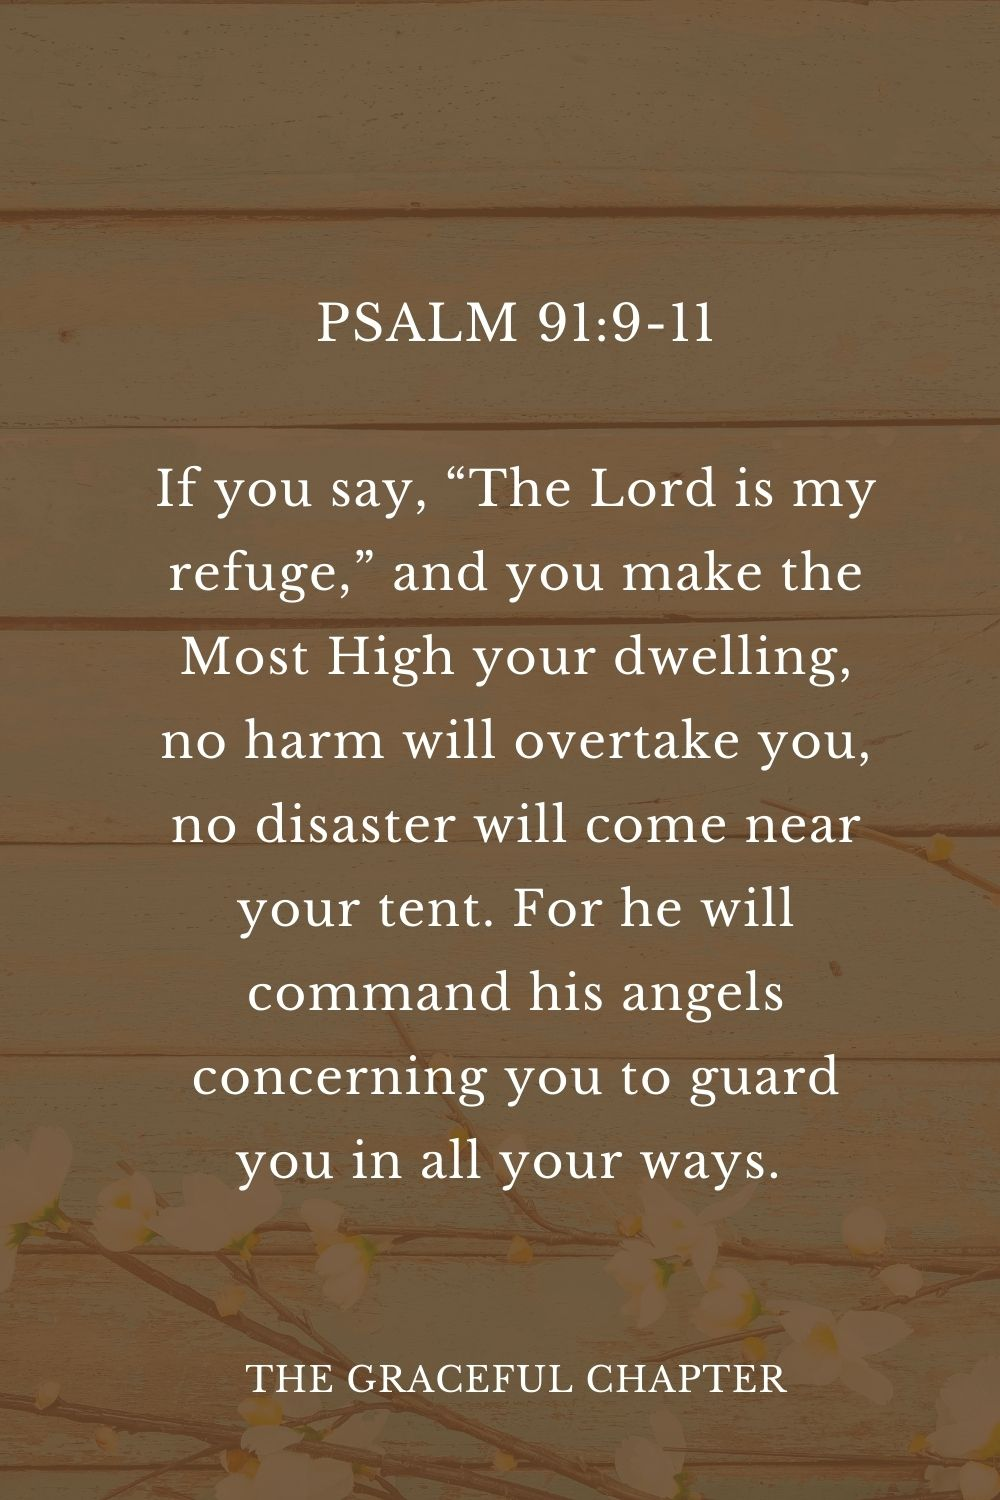 """If you say, """"The Lord is my refuge,"""" and you make the Most High your dwelling, no harm will overtake you, no disaster will come near your tent. For he will command his angels concerning you to guard you in all your ways.  Psalm 91:9-11"""